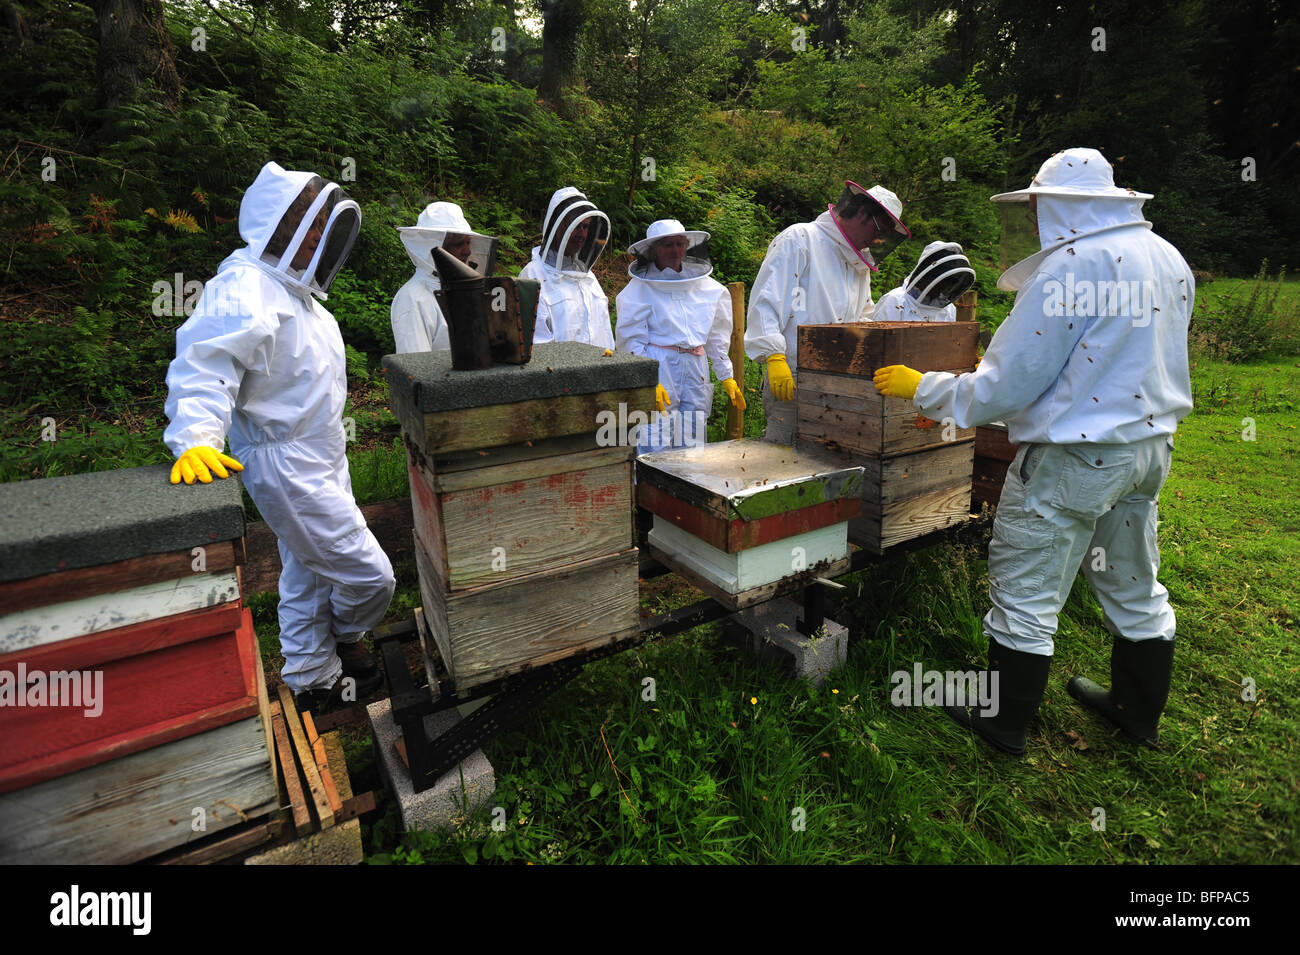 bee keepers meeting and working with bees and bee hives on a farm in Dorset - Stock Image